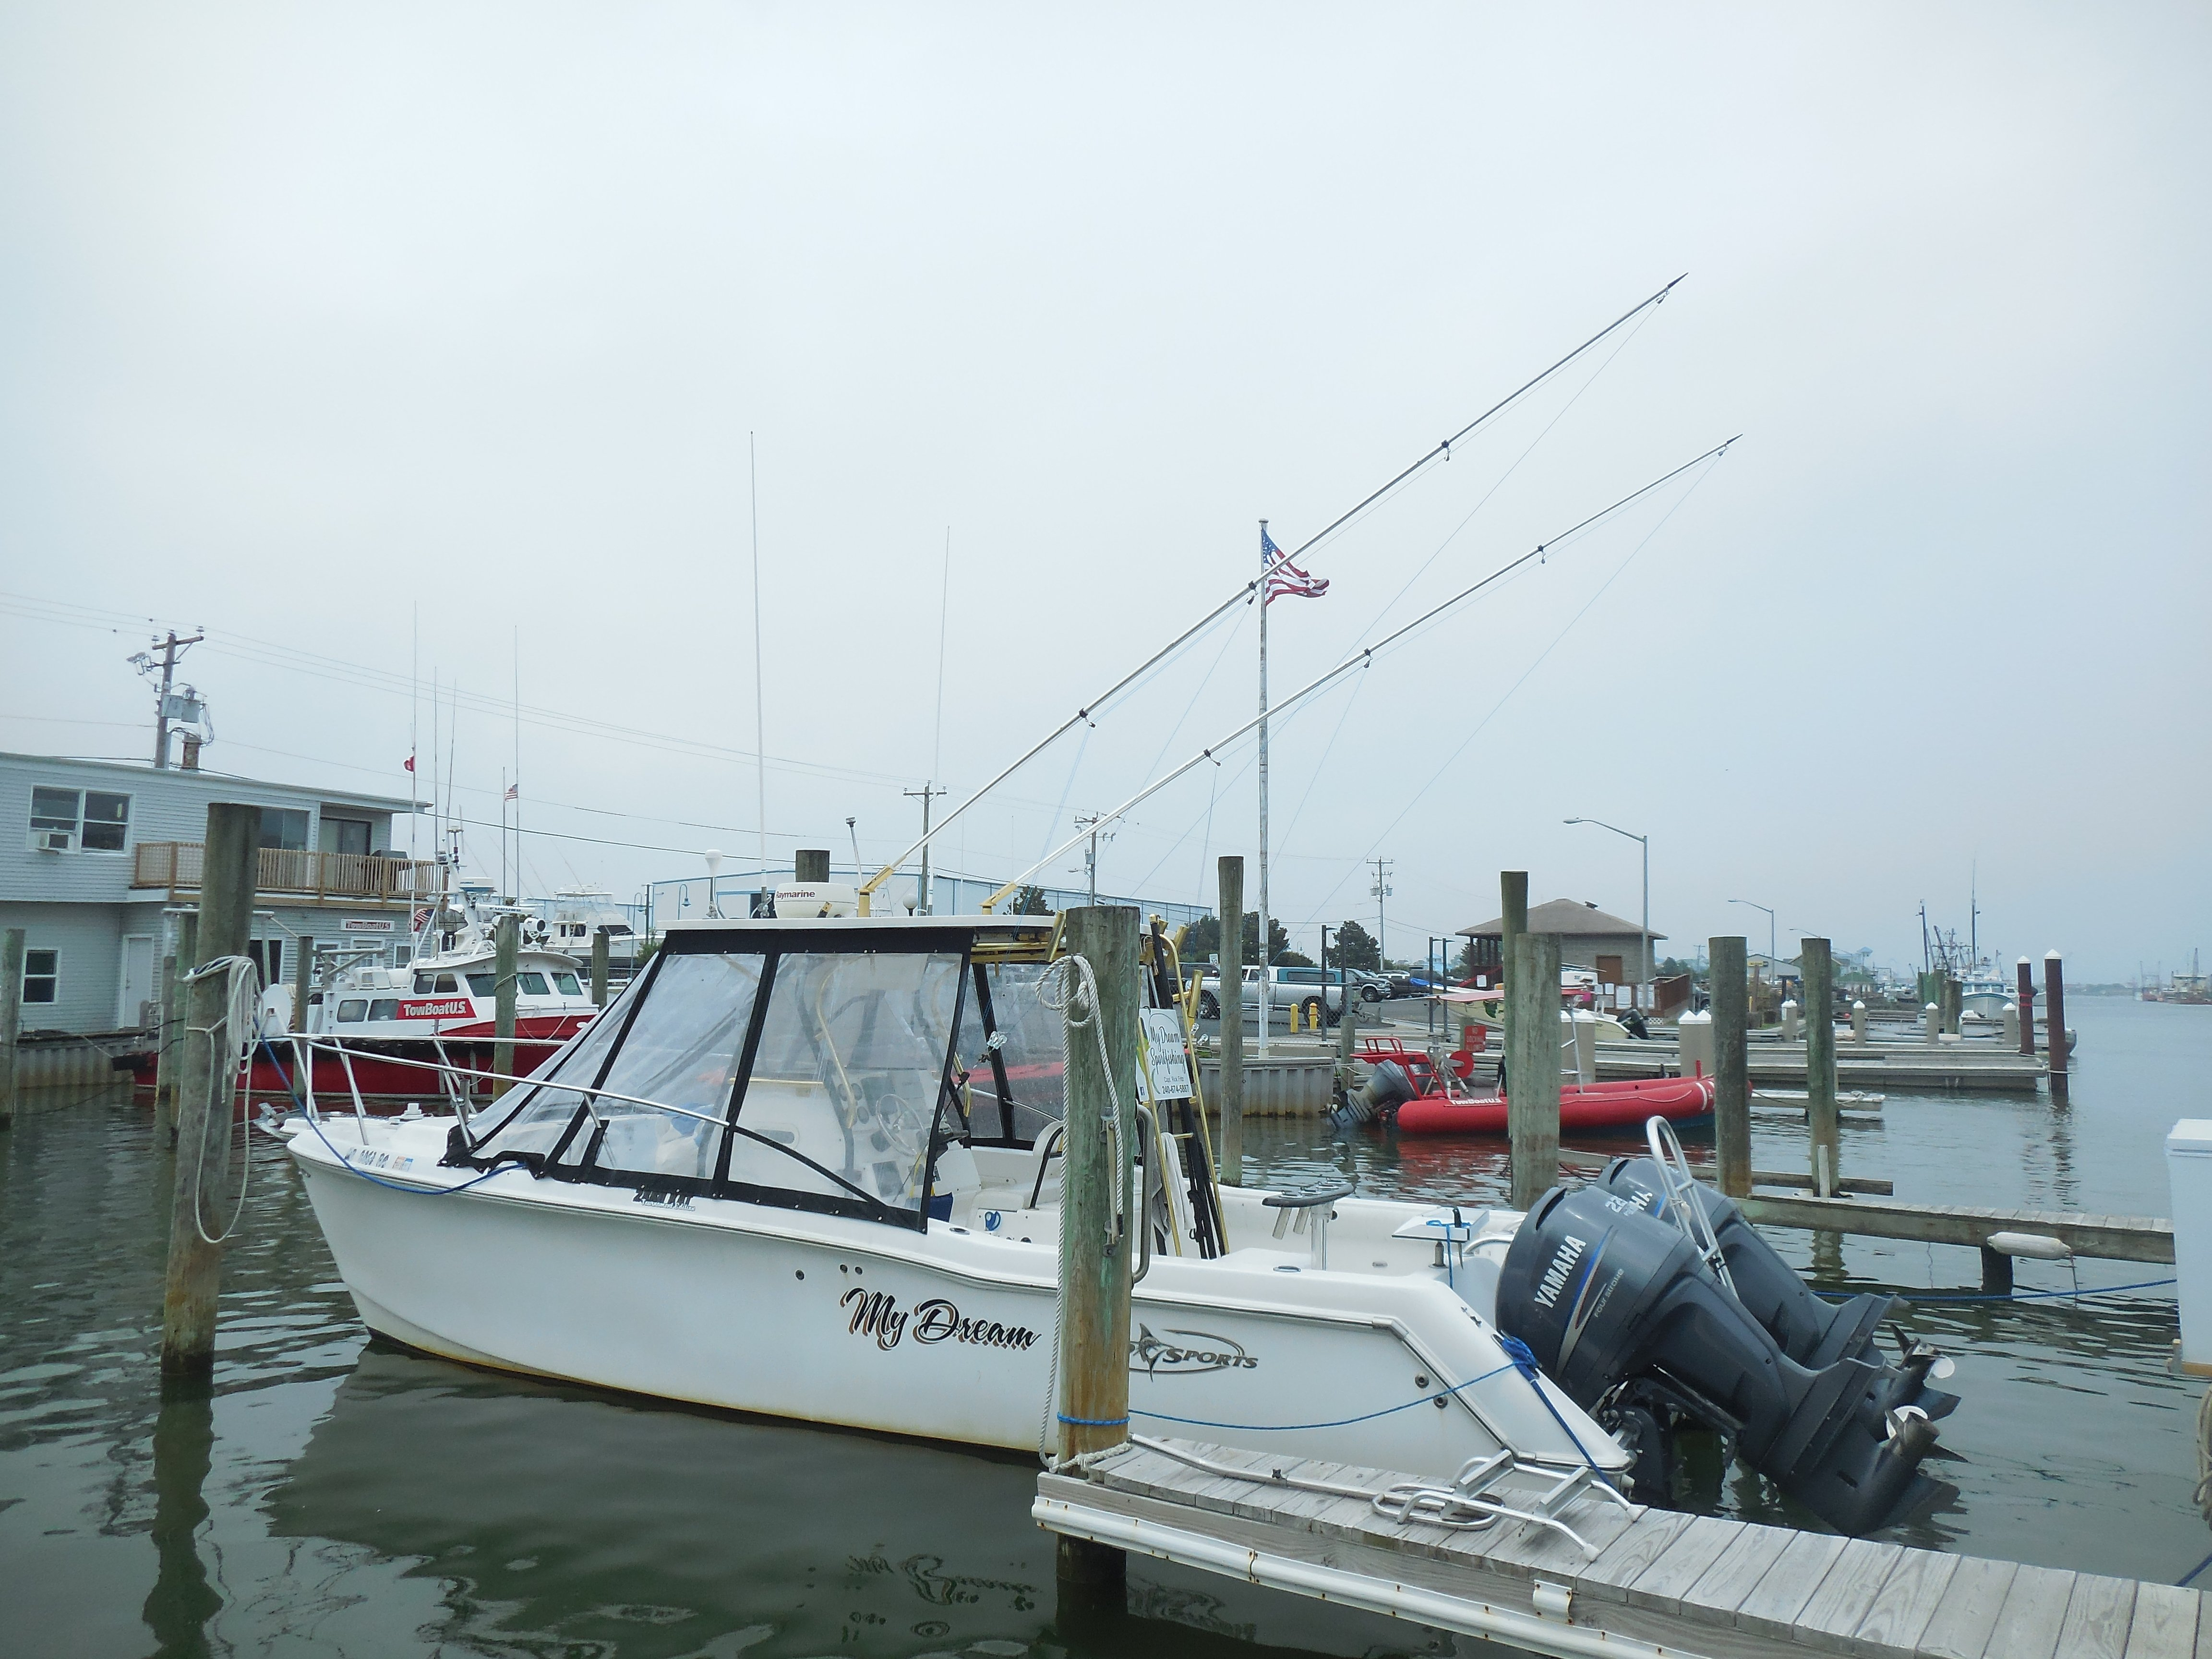 My Dream Sportfishing